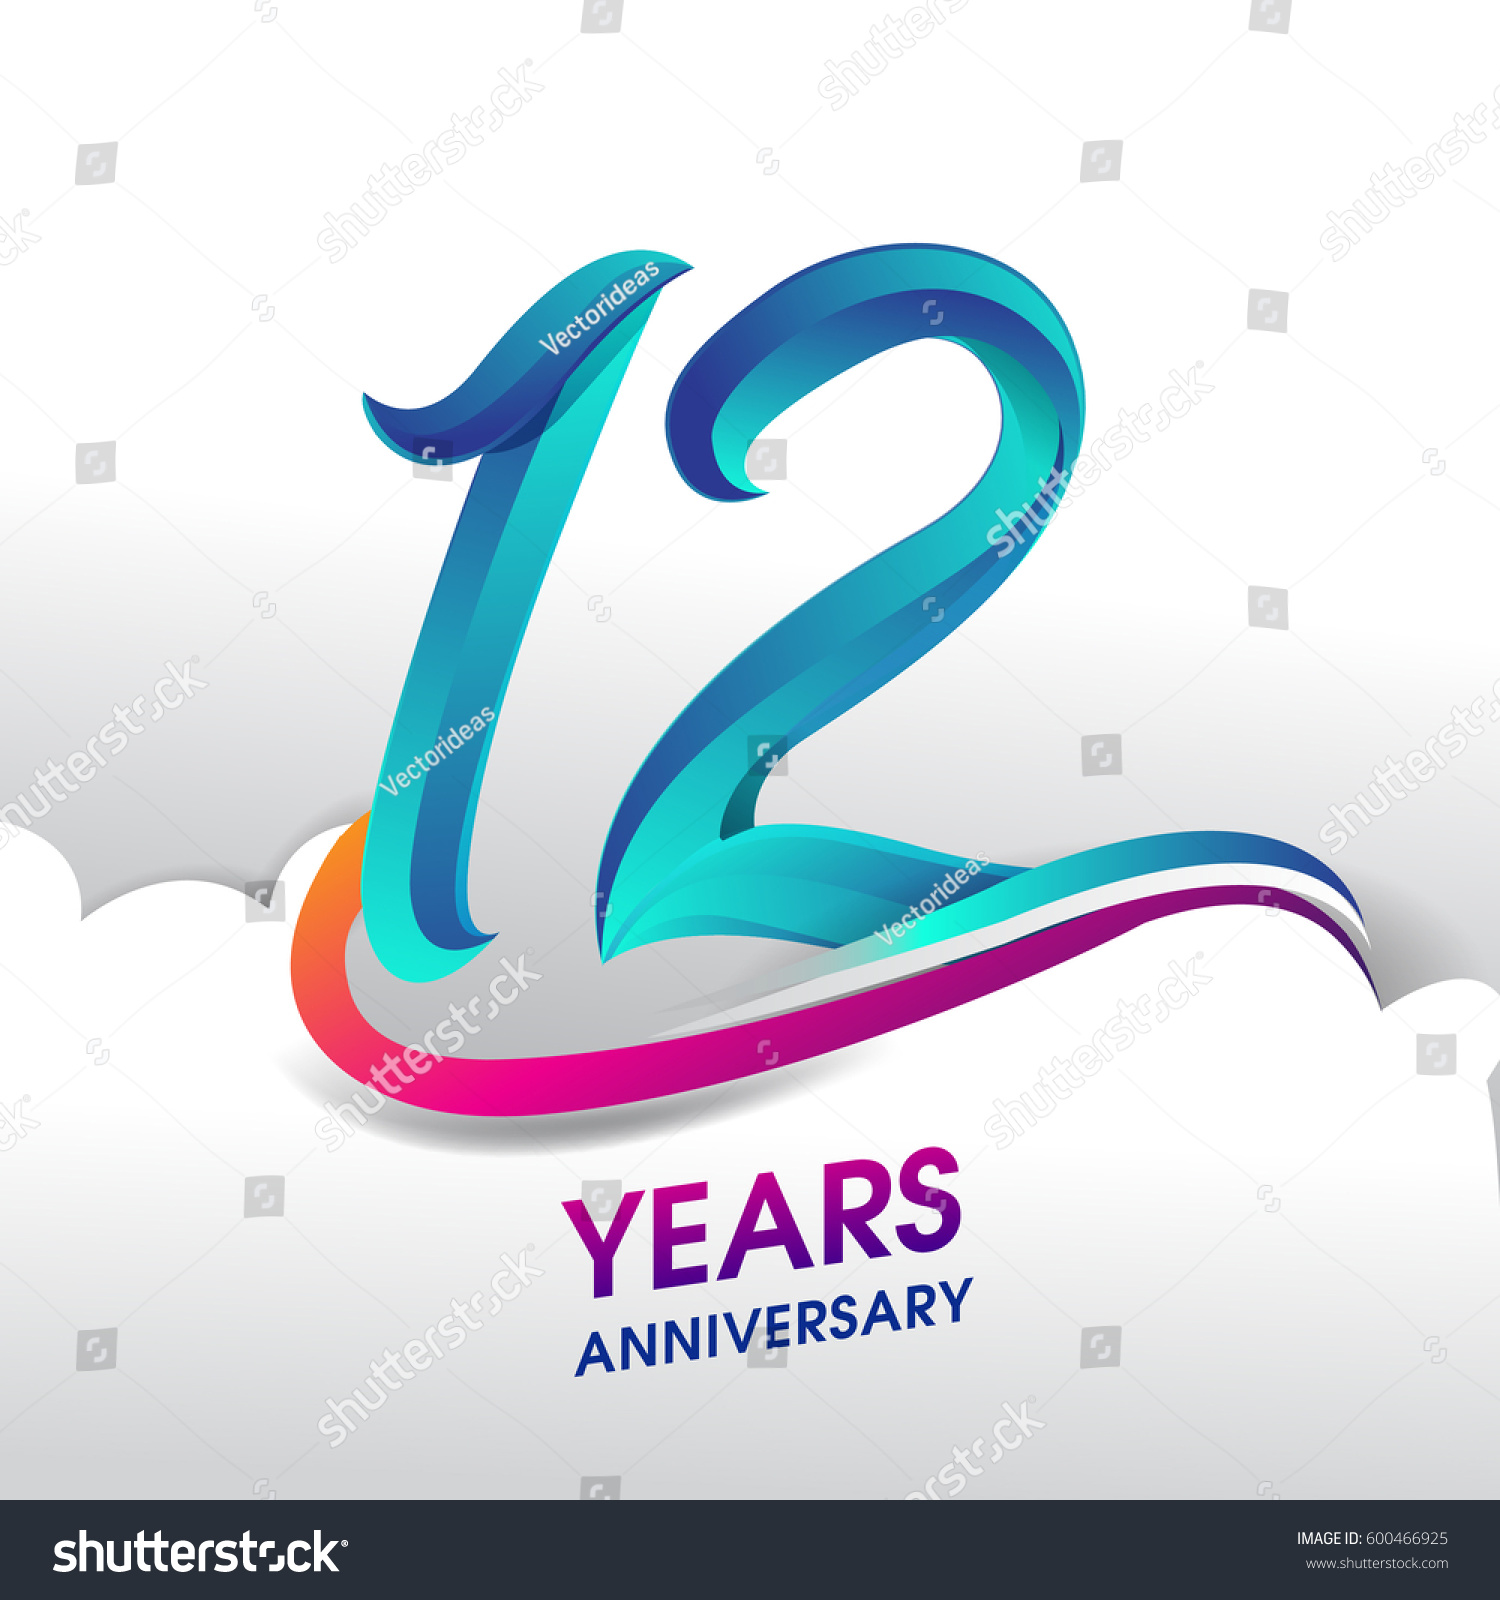 Image result for 12 years